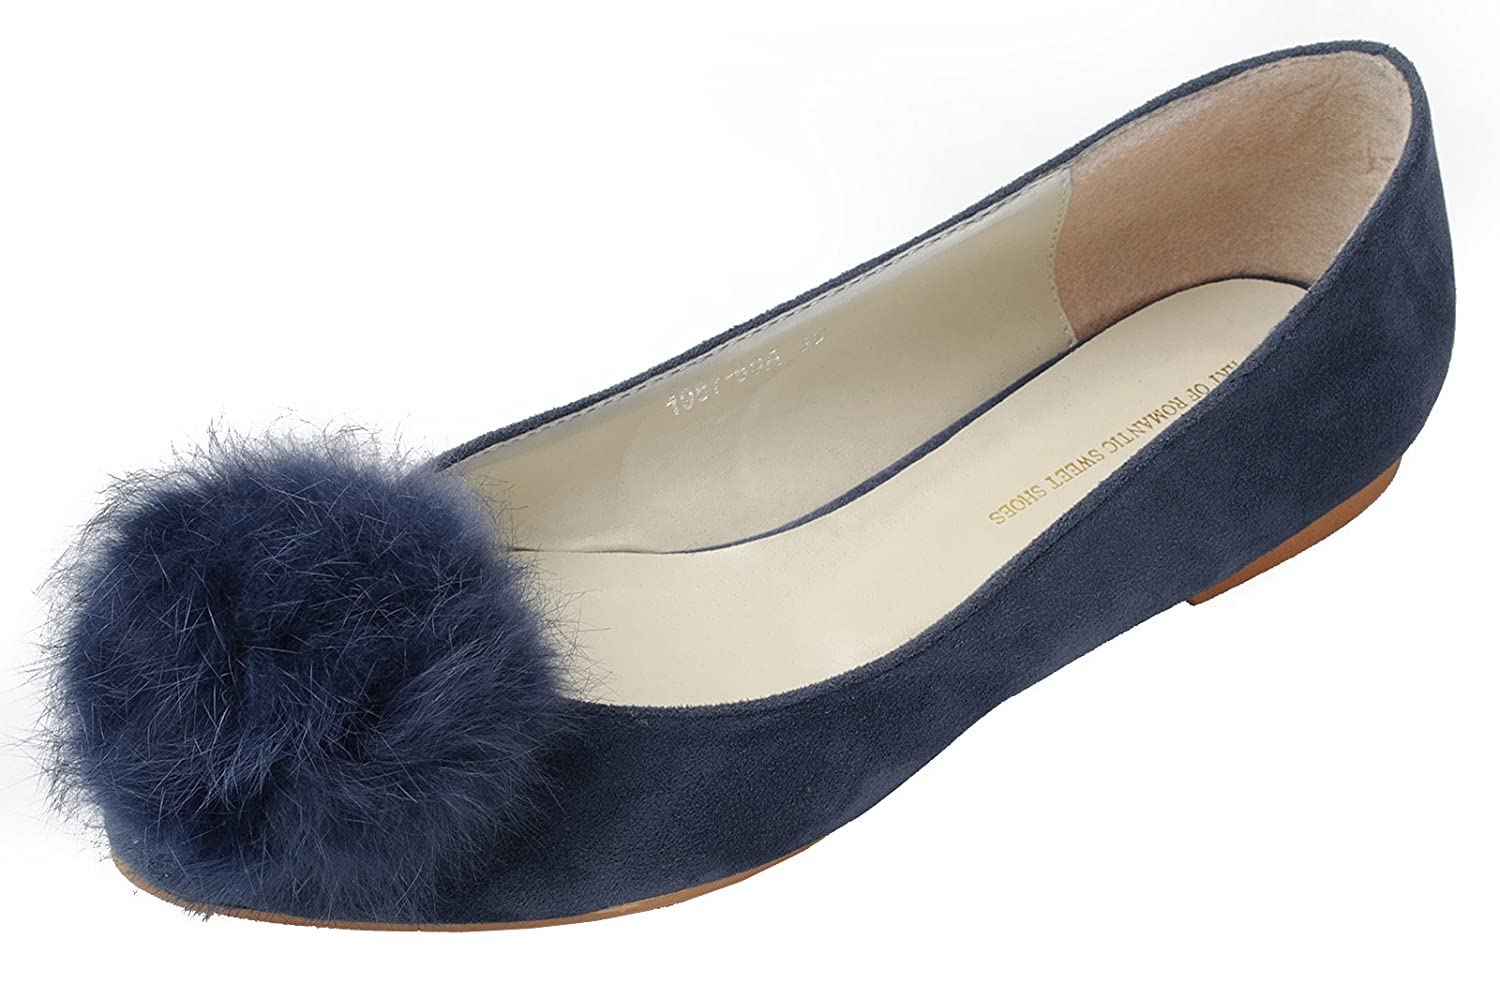 73cdf859075d Womens Fluffy Fur Pom Pom Faux-Suede Ballet Flat Shoes 60%OFF ...